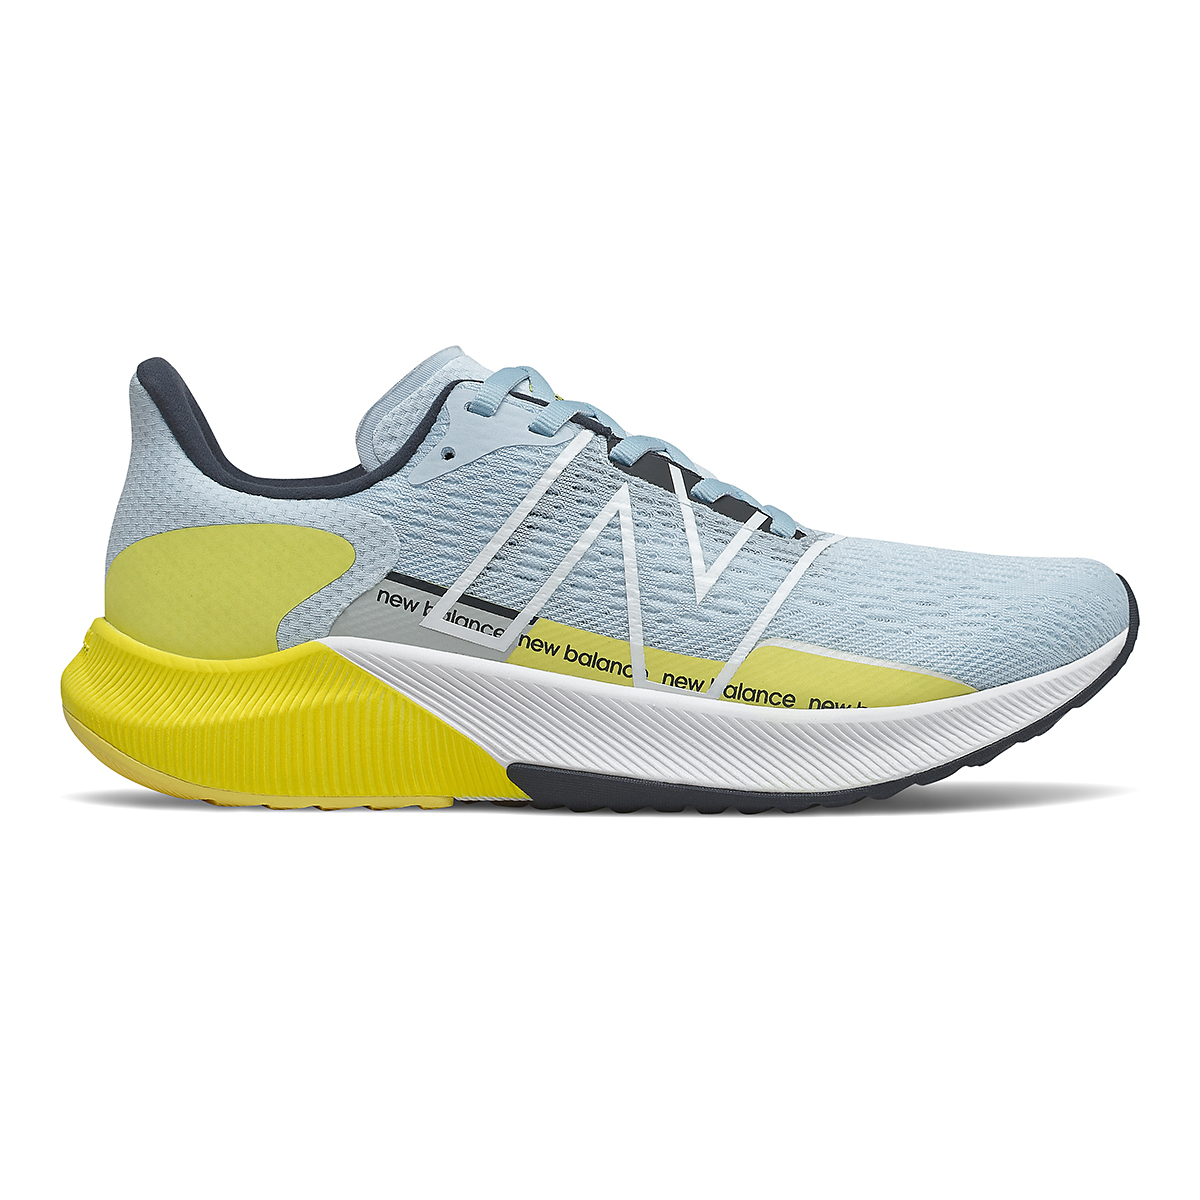 Women's New Balance Fuelcell Propel V2 Running Shoe - Color: Uv Glo/First Light/Eclipse - Size: 5 - Width: Regular, Uv Glo/First Light/Eclipse, large, image 1